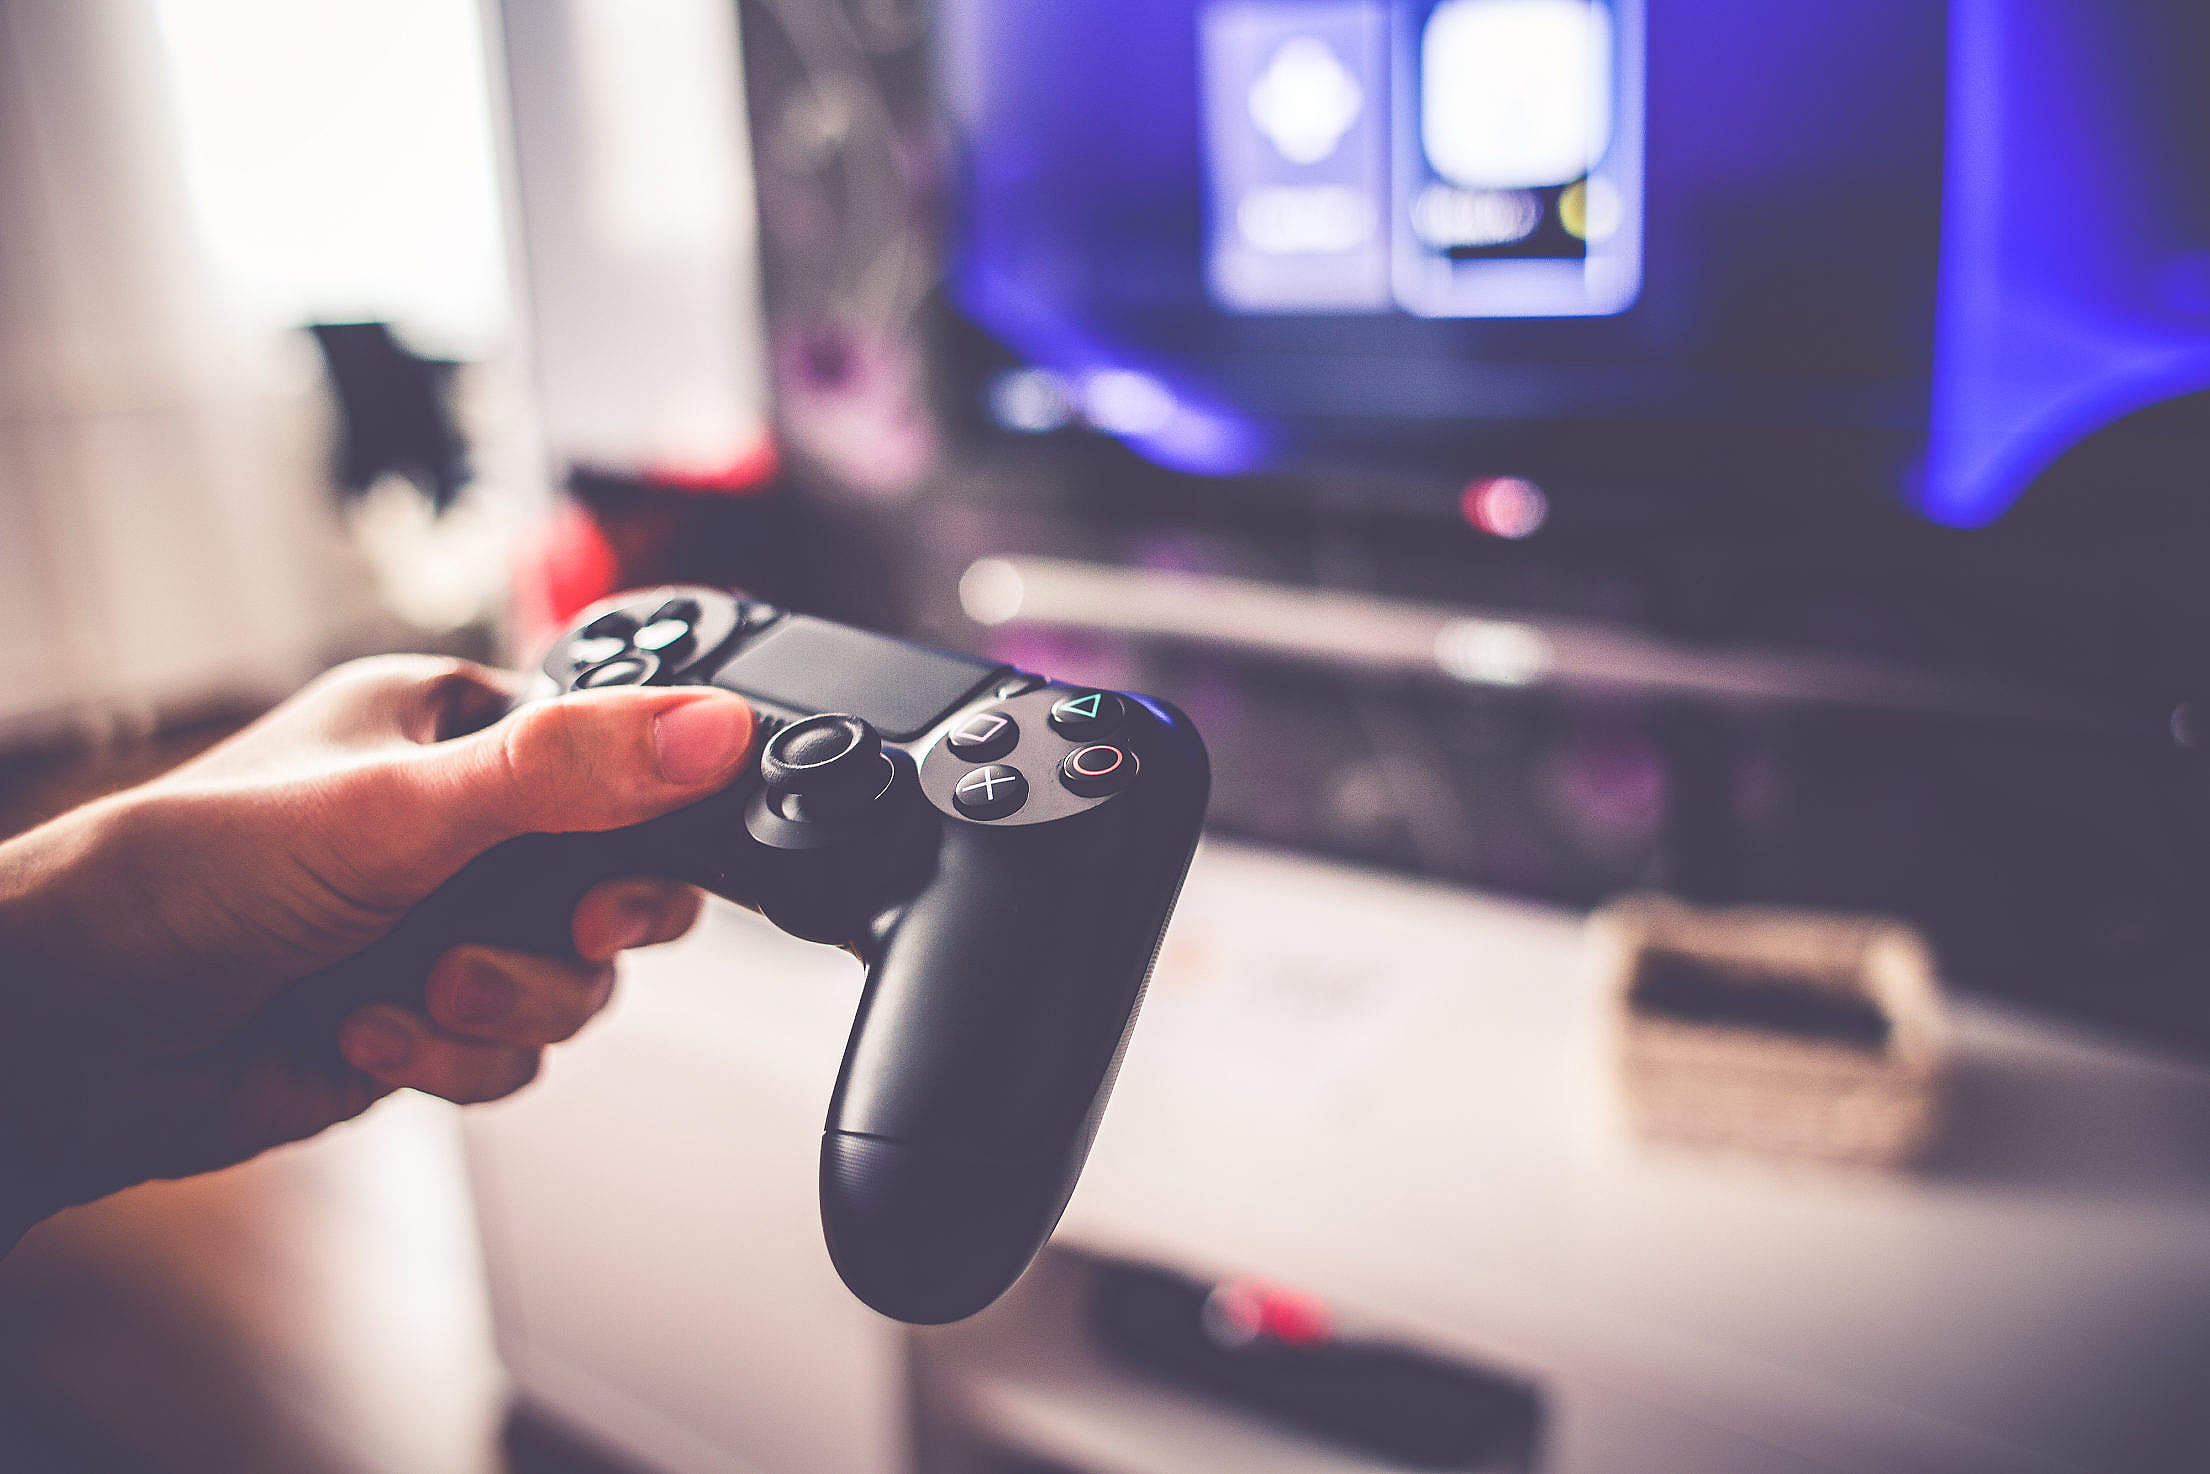 Playing Games on Playstation 4 Free Stock Photo